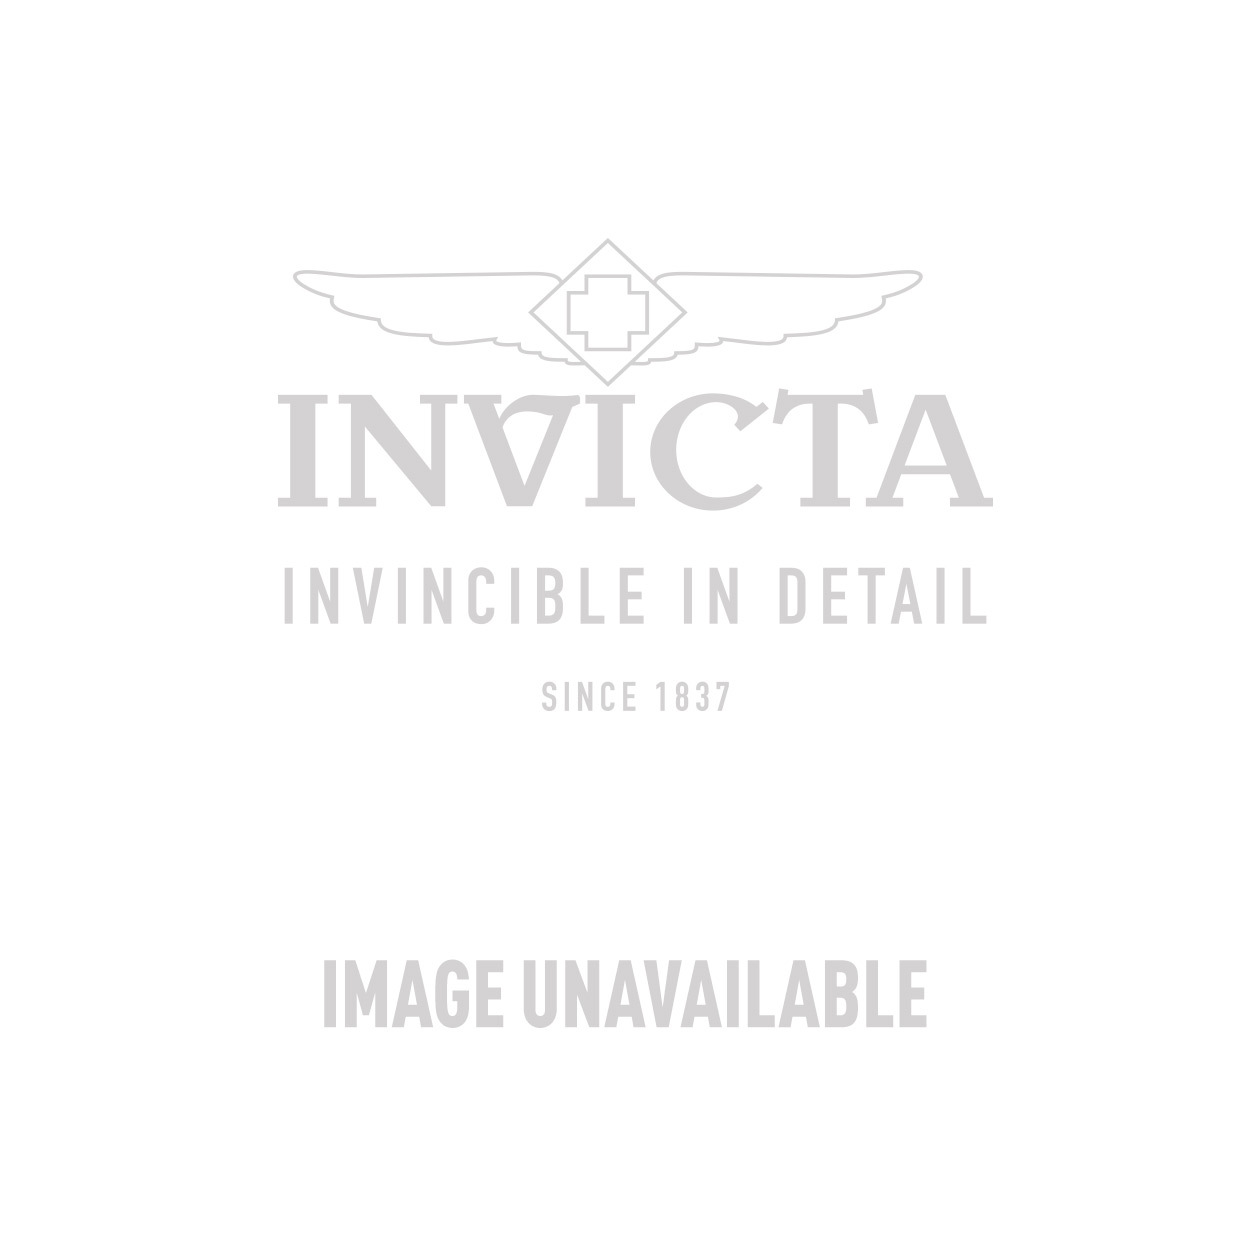 Invicta Subaqua Swiss Made Quartz Watch - Gold case with Gold tone Stainless Steel band - Model 17577